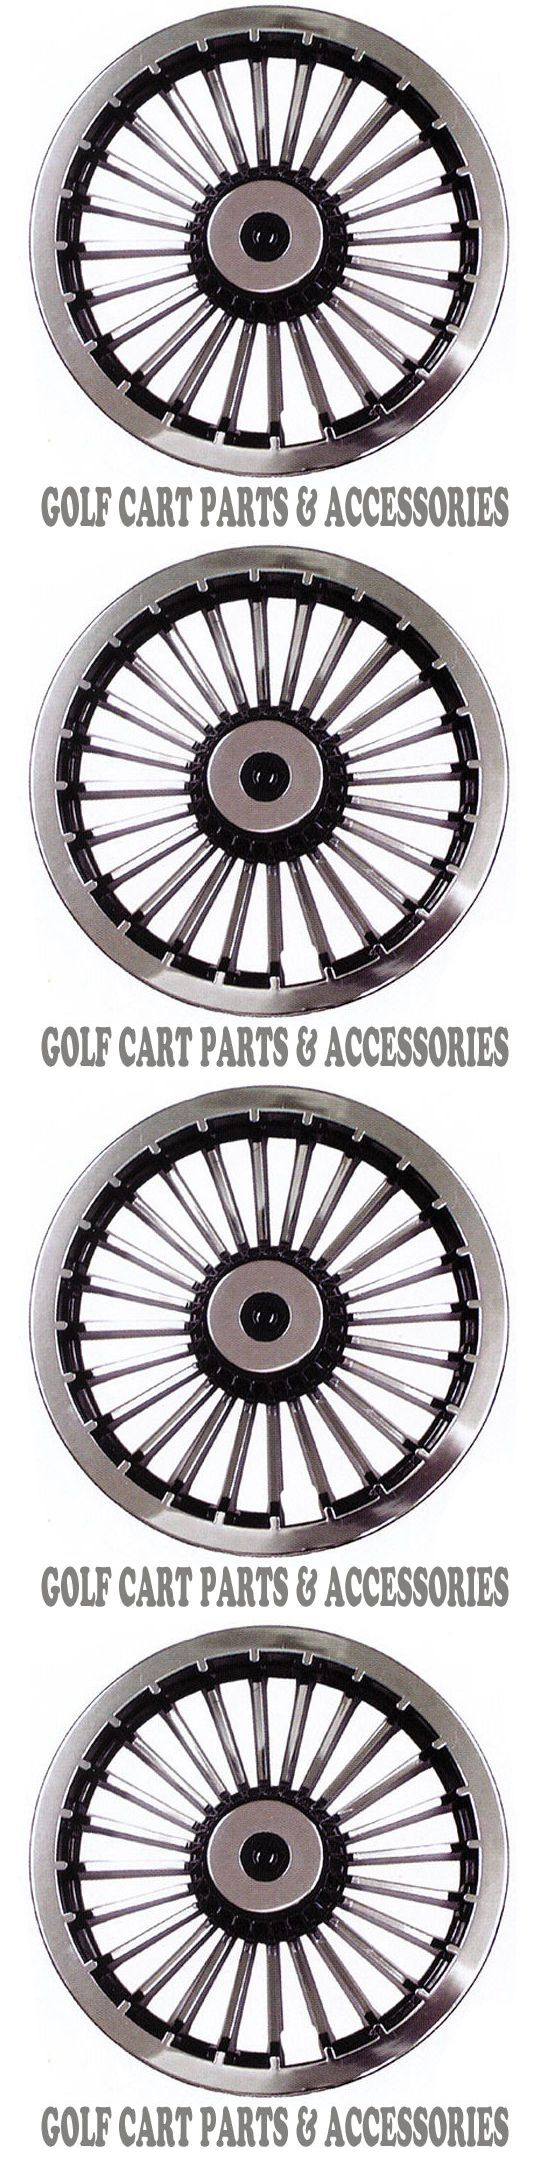 Other Golf Accessories 1514: Chrome 8 Golf Cart Hub Caps - Ezgo, Club Car, Yamaha Set Of 4 Wheel Covers New -> BUY IT NOW ONLY: $39.89 on eBay!